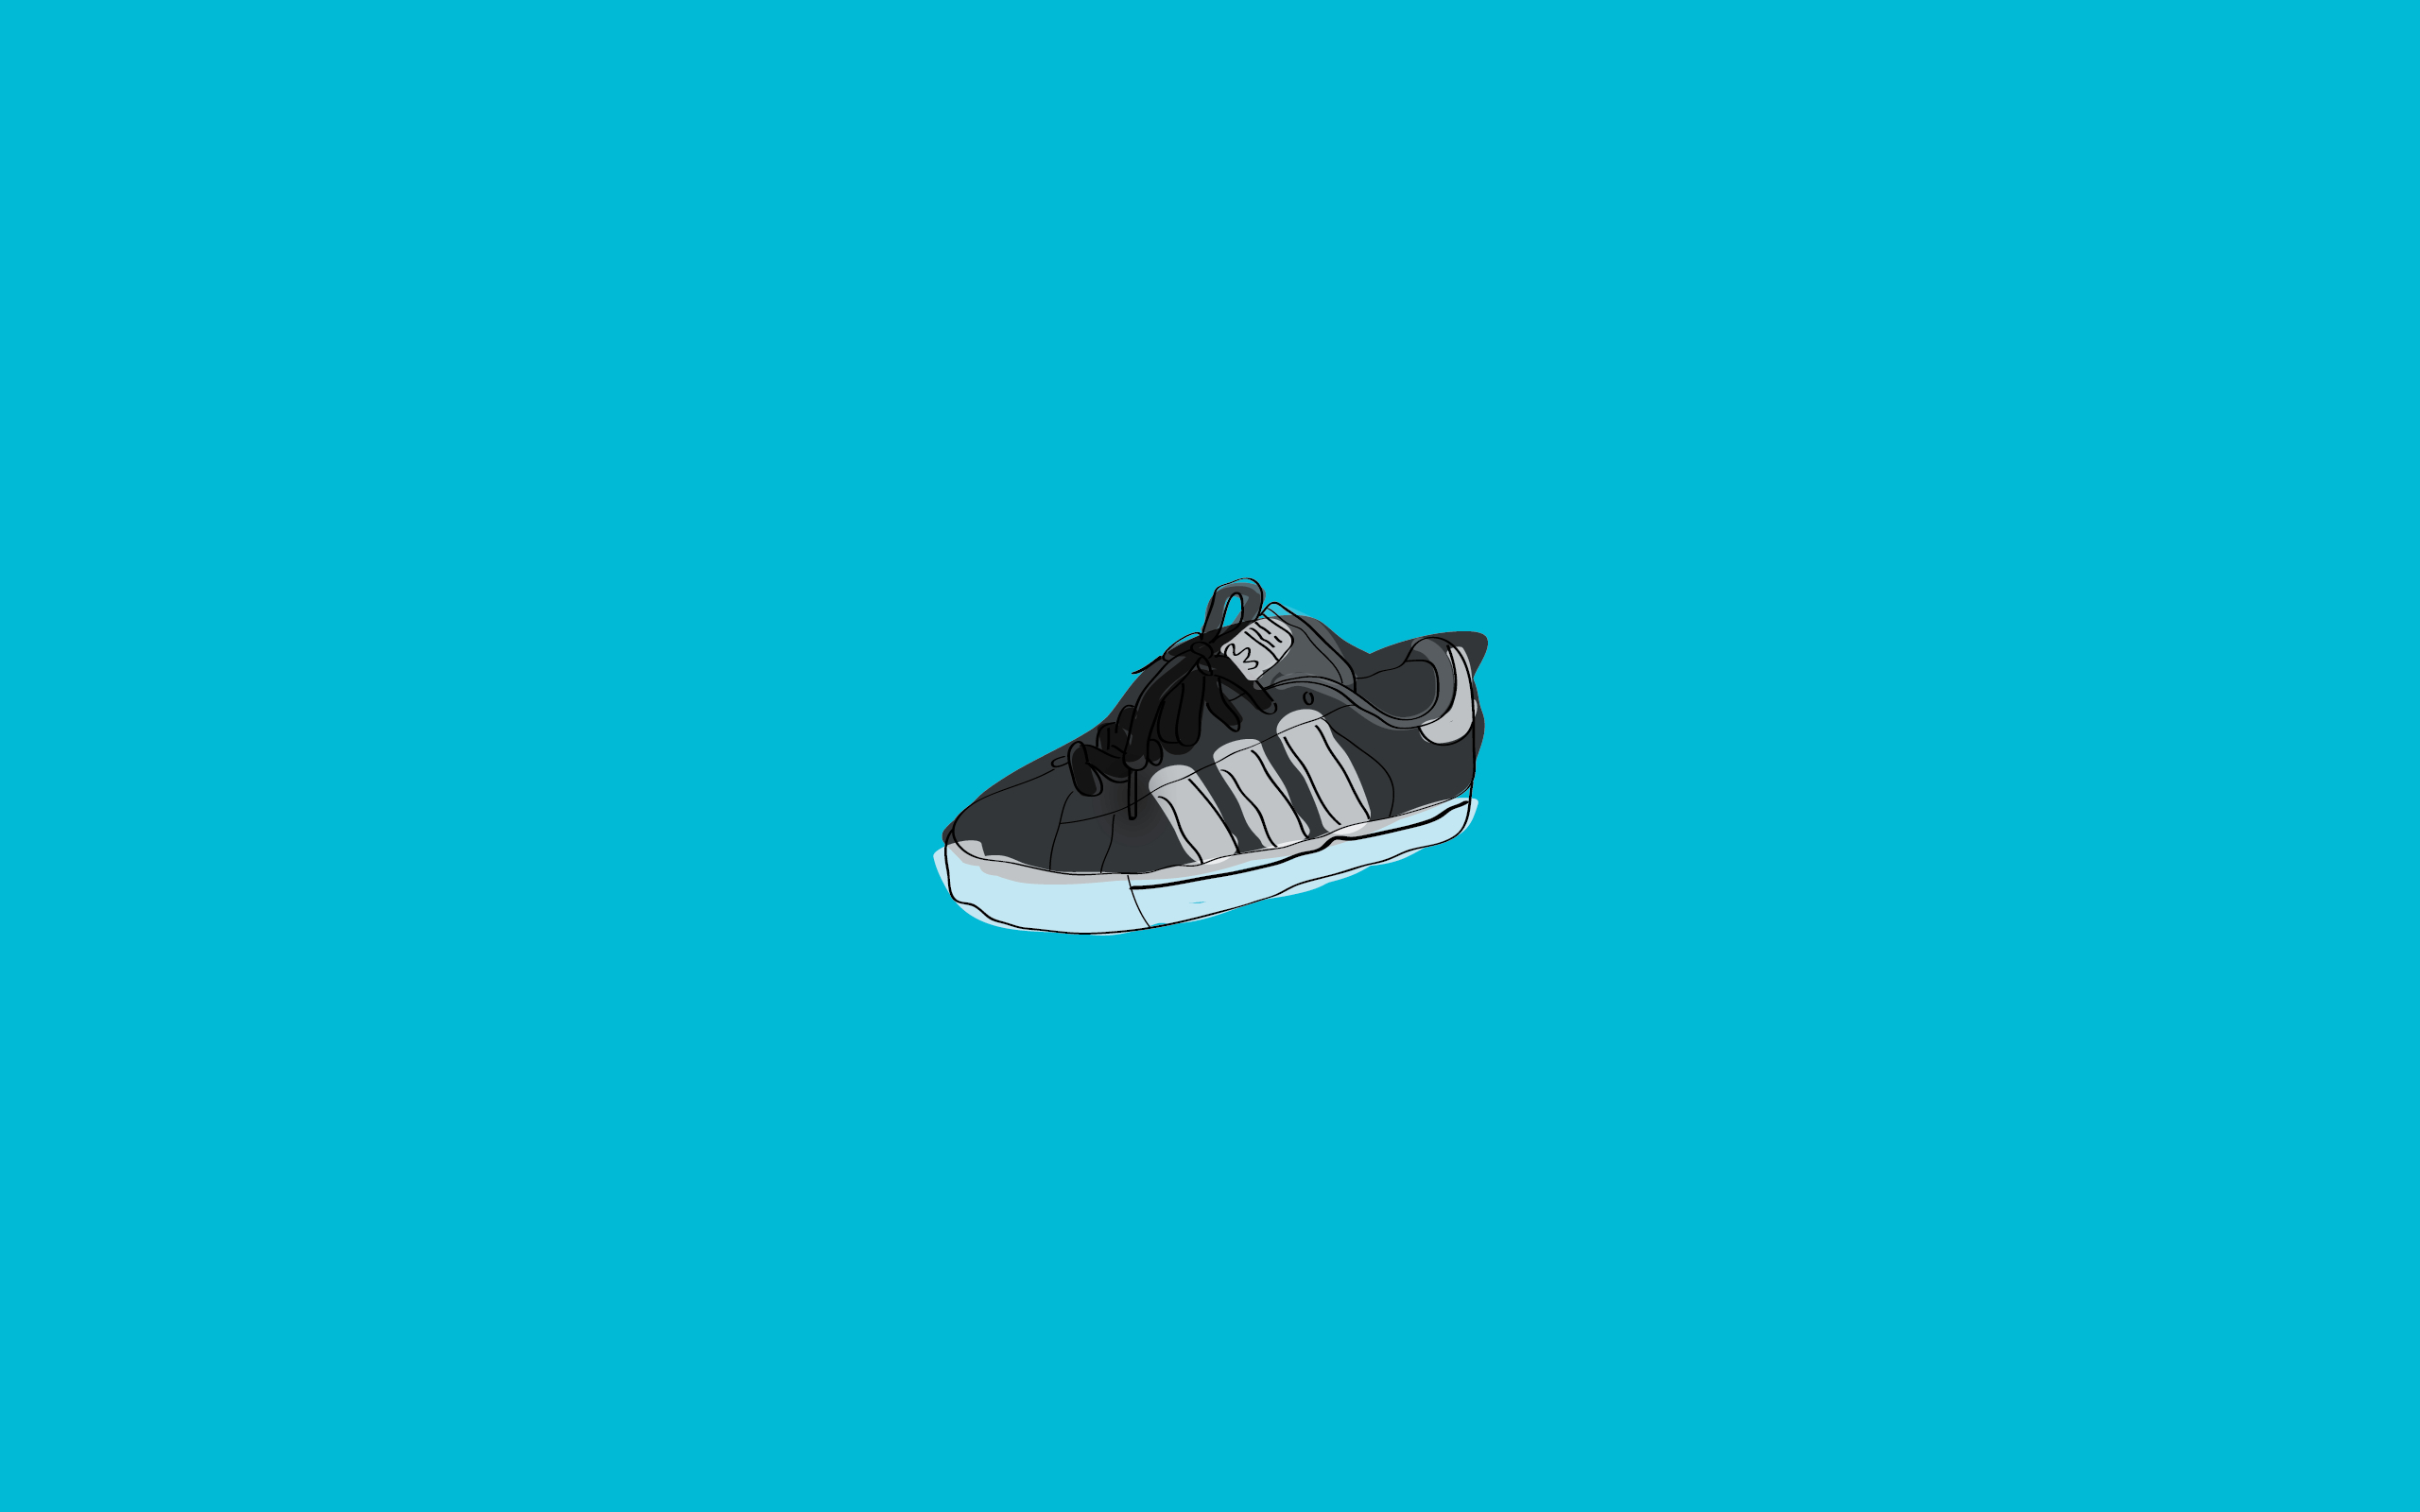 Adidas minimalistic simple sneakers HD Wallpaper